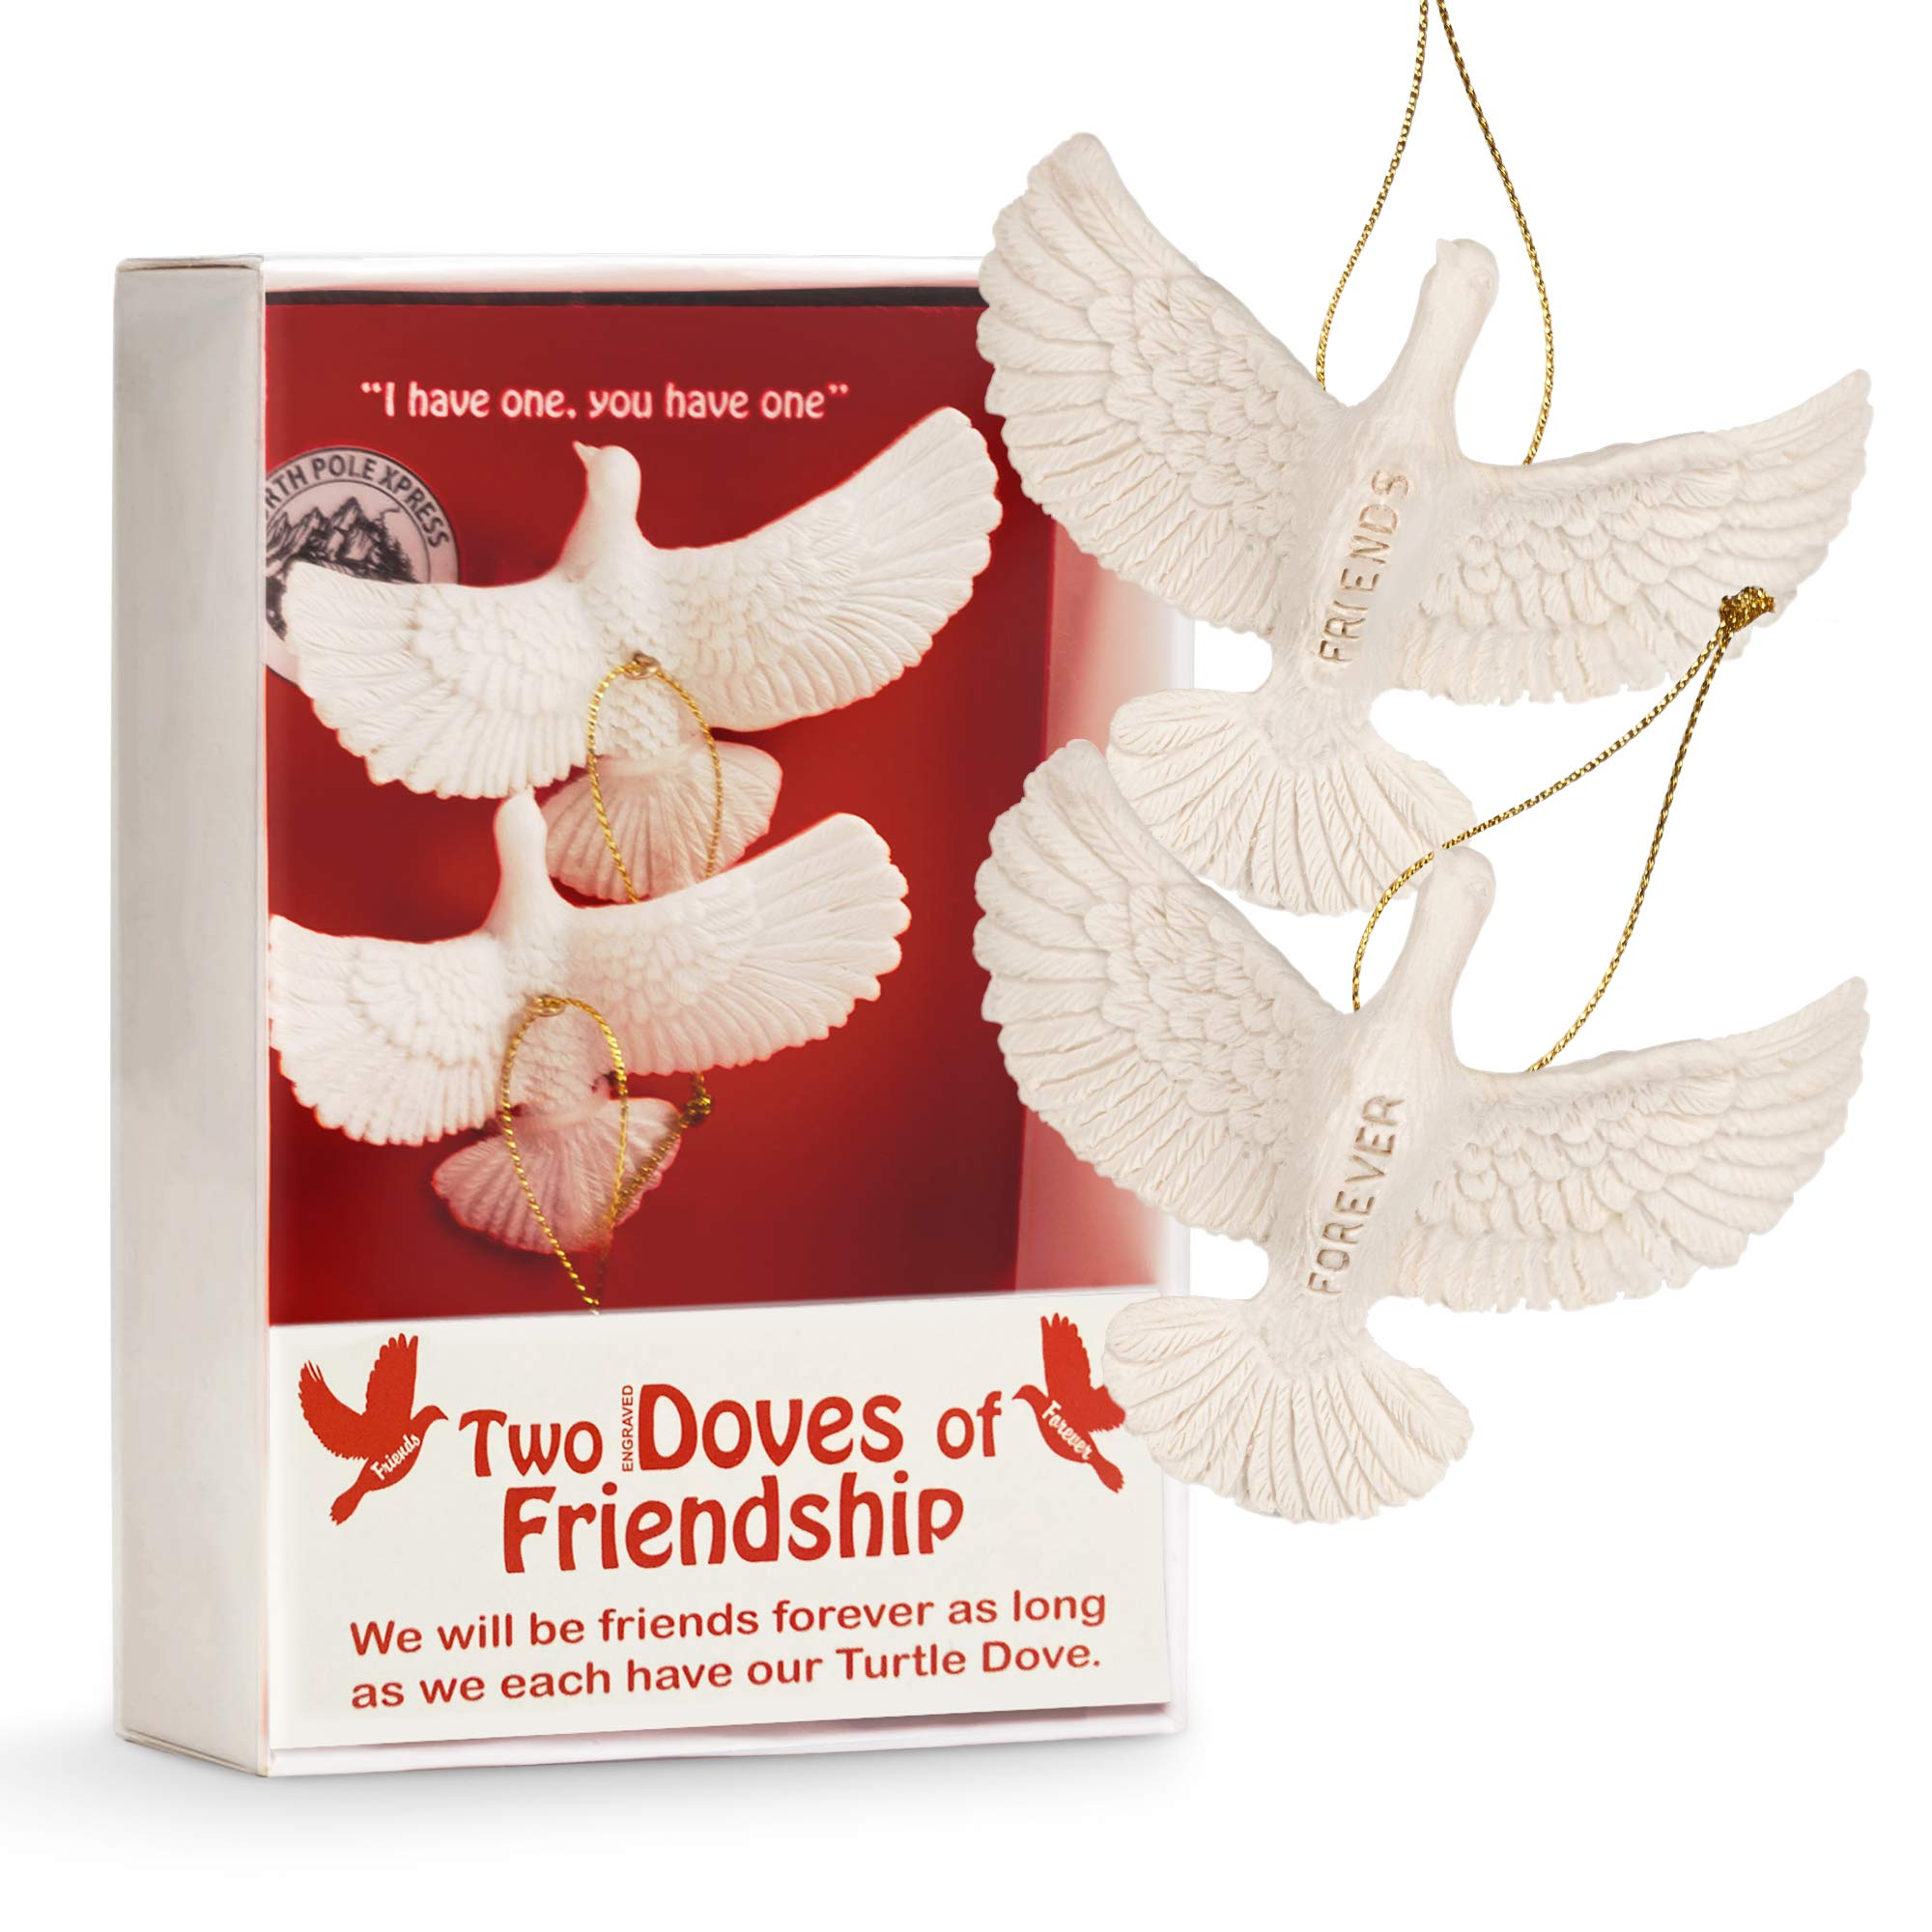 NorthPoleXpress Turtle Doves Friendship Christmas Ornaments - Set of Two Doves Engraved with Friends Forever - Two Turtle Dove Ornament from Home Alone 2 Lost in York